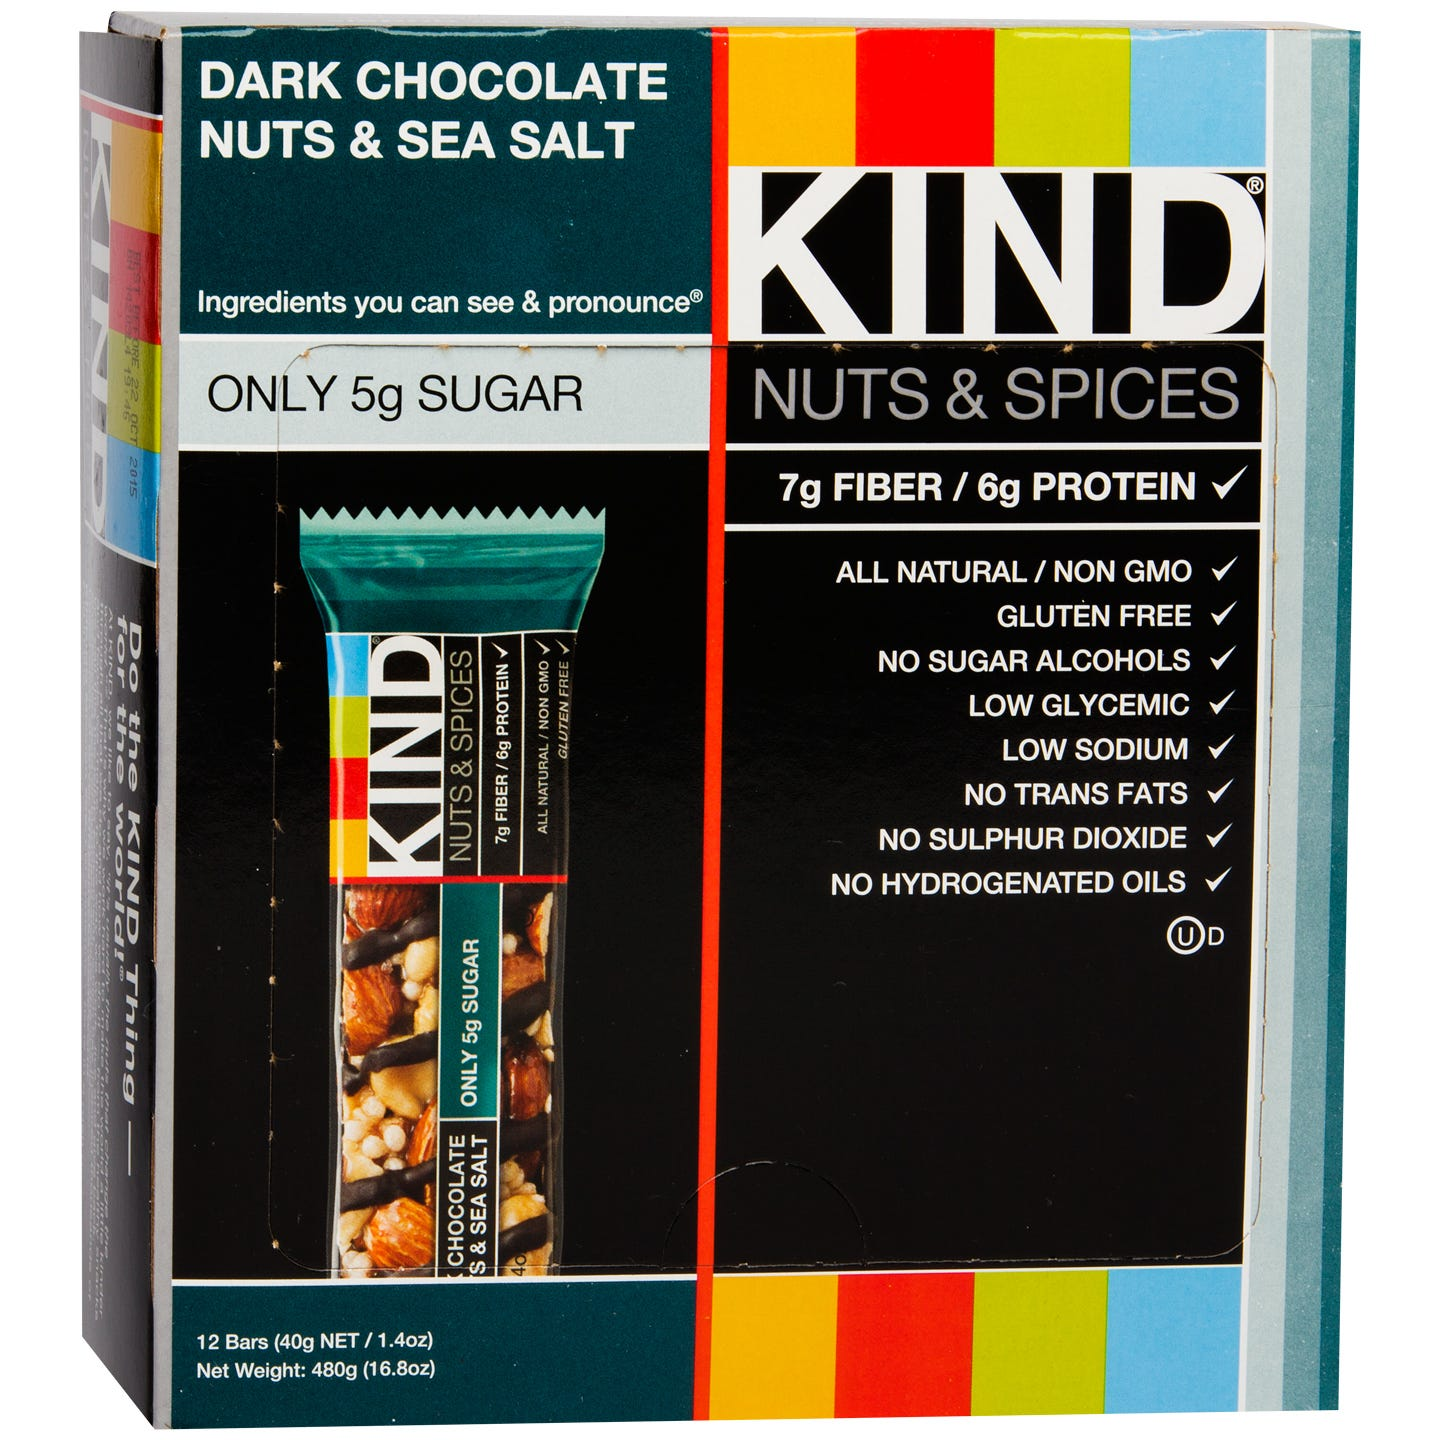 Kind Nuts & Spices Bar Dark Chocolate Nuts & Sea Salt (12 ct) - Rapid Diet Weight Loss Products Shop